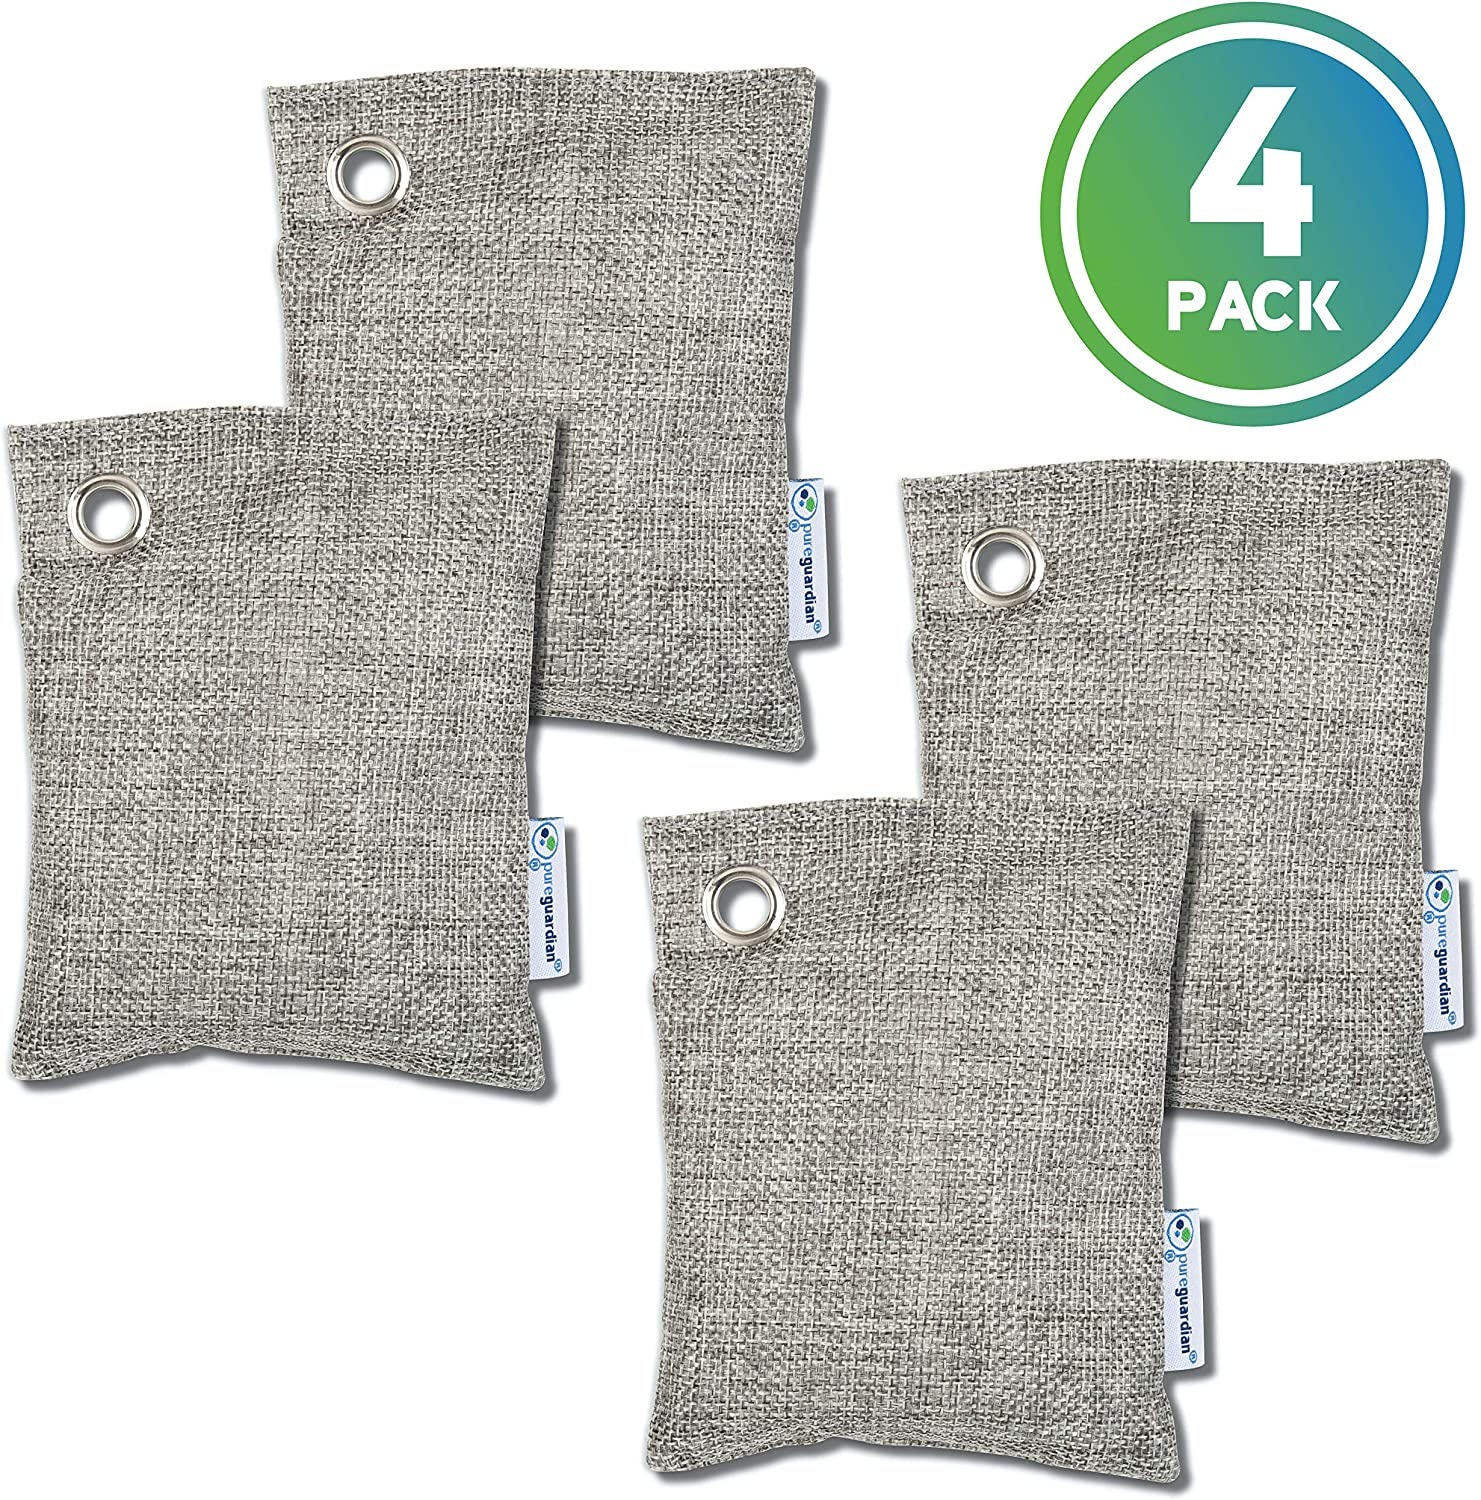 Guardian Technologies CB1004PK Pure Guardian Bamboo Charcoal Air Purifier Bags, Eco-Friendly, Naturally Absorbs Odors, Excess Moisture and Pollutants, 4-pack - 100g each, Gray